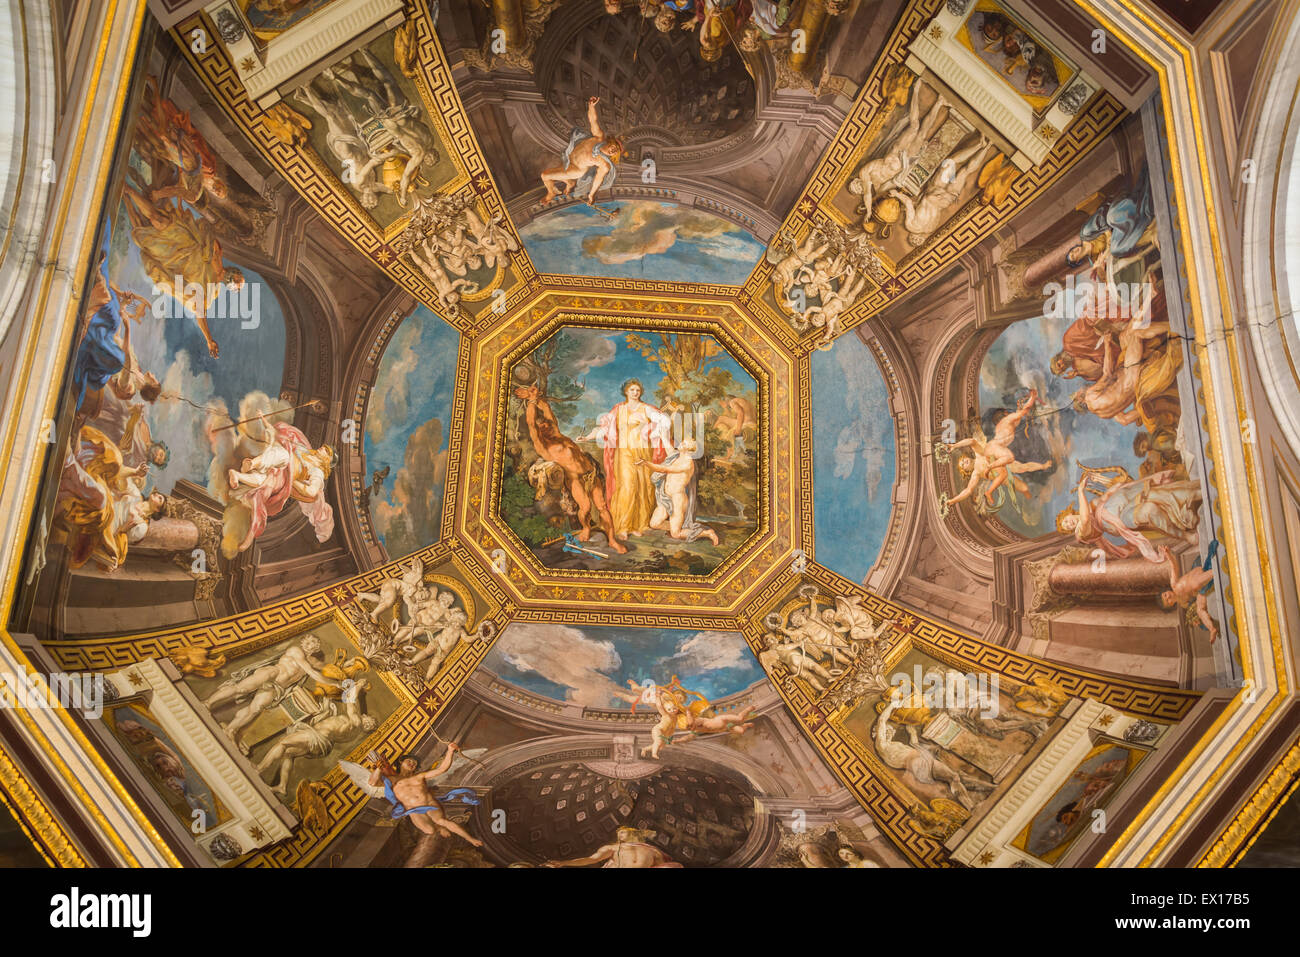 Apollo and the Muses - Vatican Museums Stock Photo